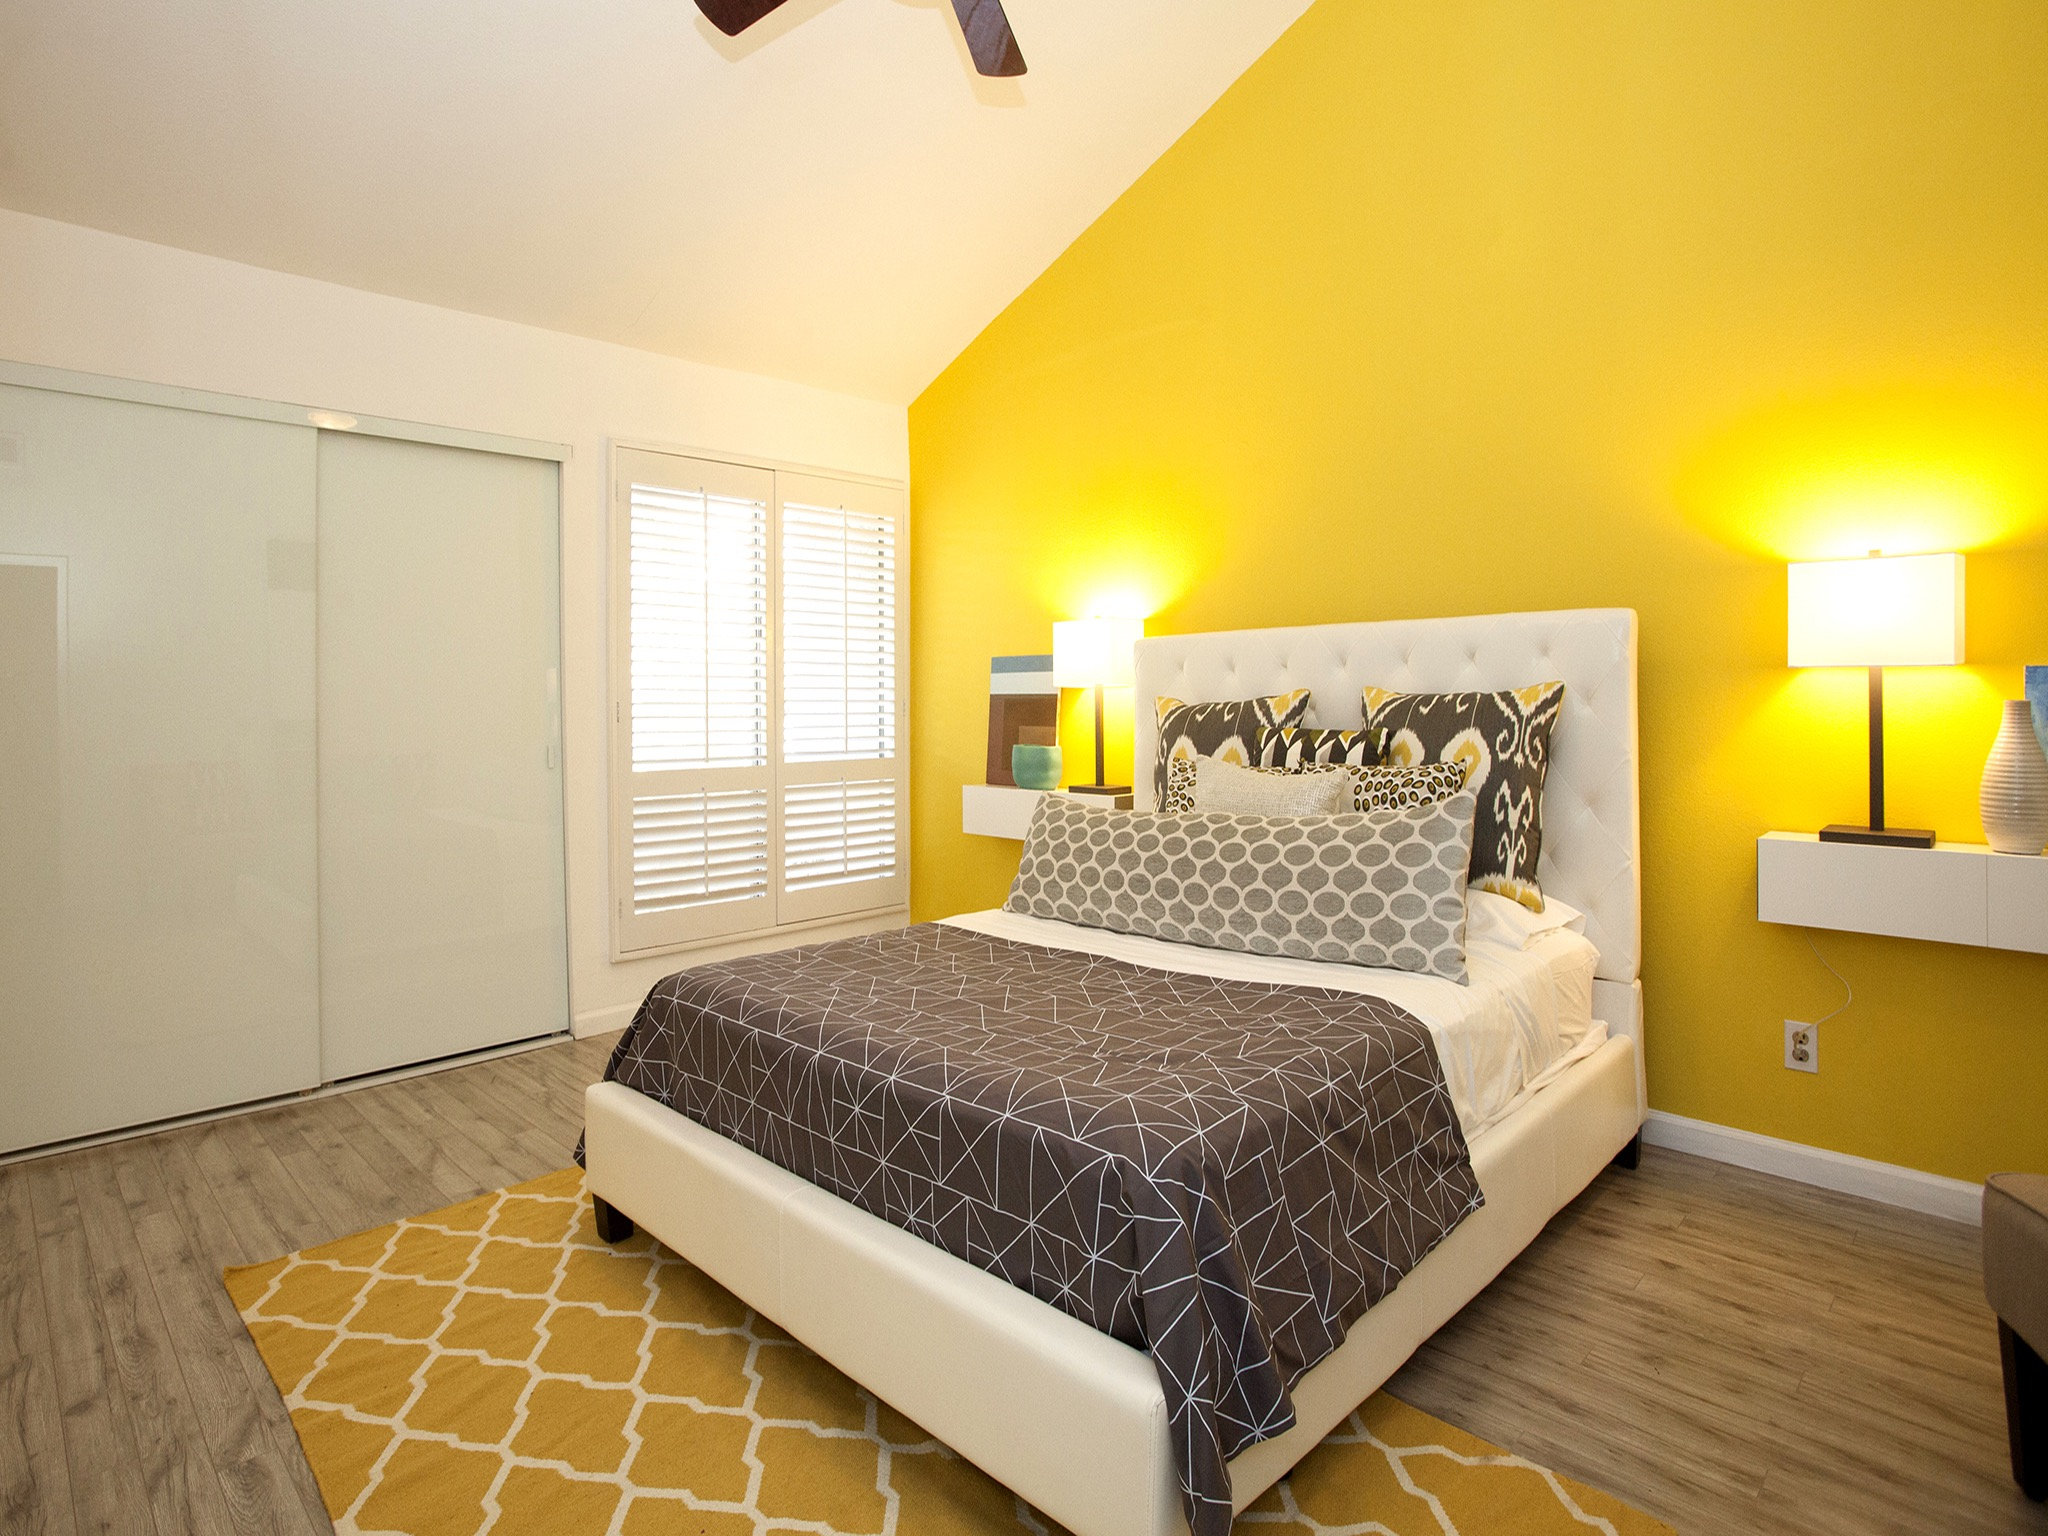 Modern Bedroom With Bright Yellow Accent Wall (Image 9 of 23)